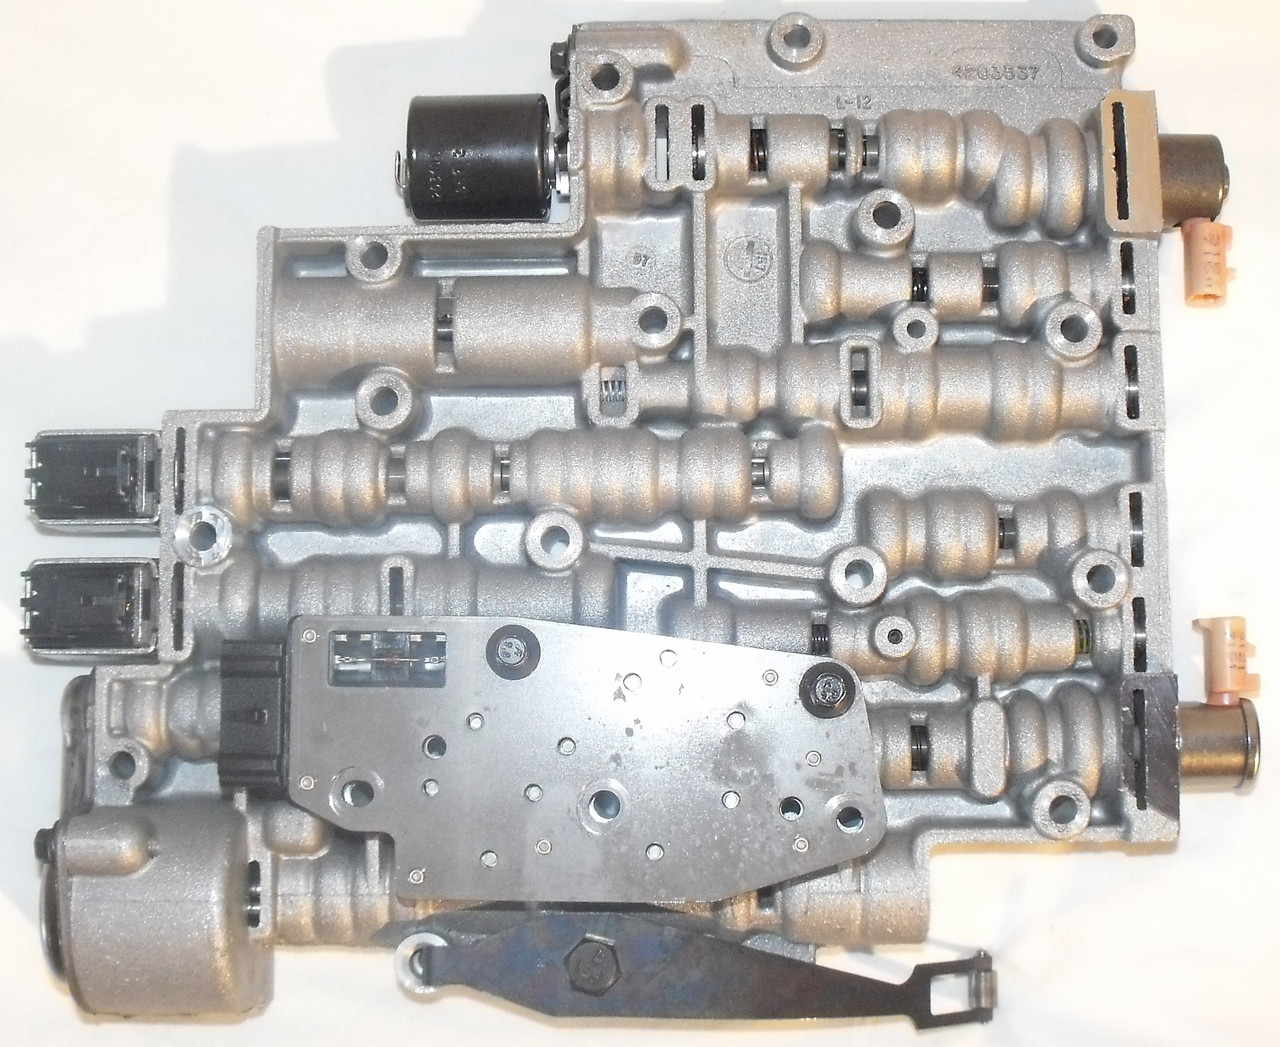 New Design Accumulator Piston additionally  further Ccrp Z Chevy Impala Transmission Second Gear Accumulator Body as well Maxresdefault also A. on 4l60e transmission parts diagram